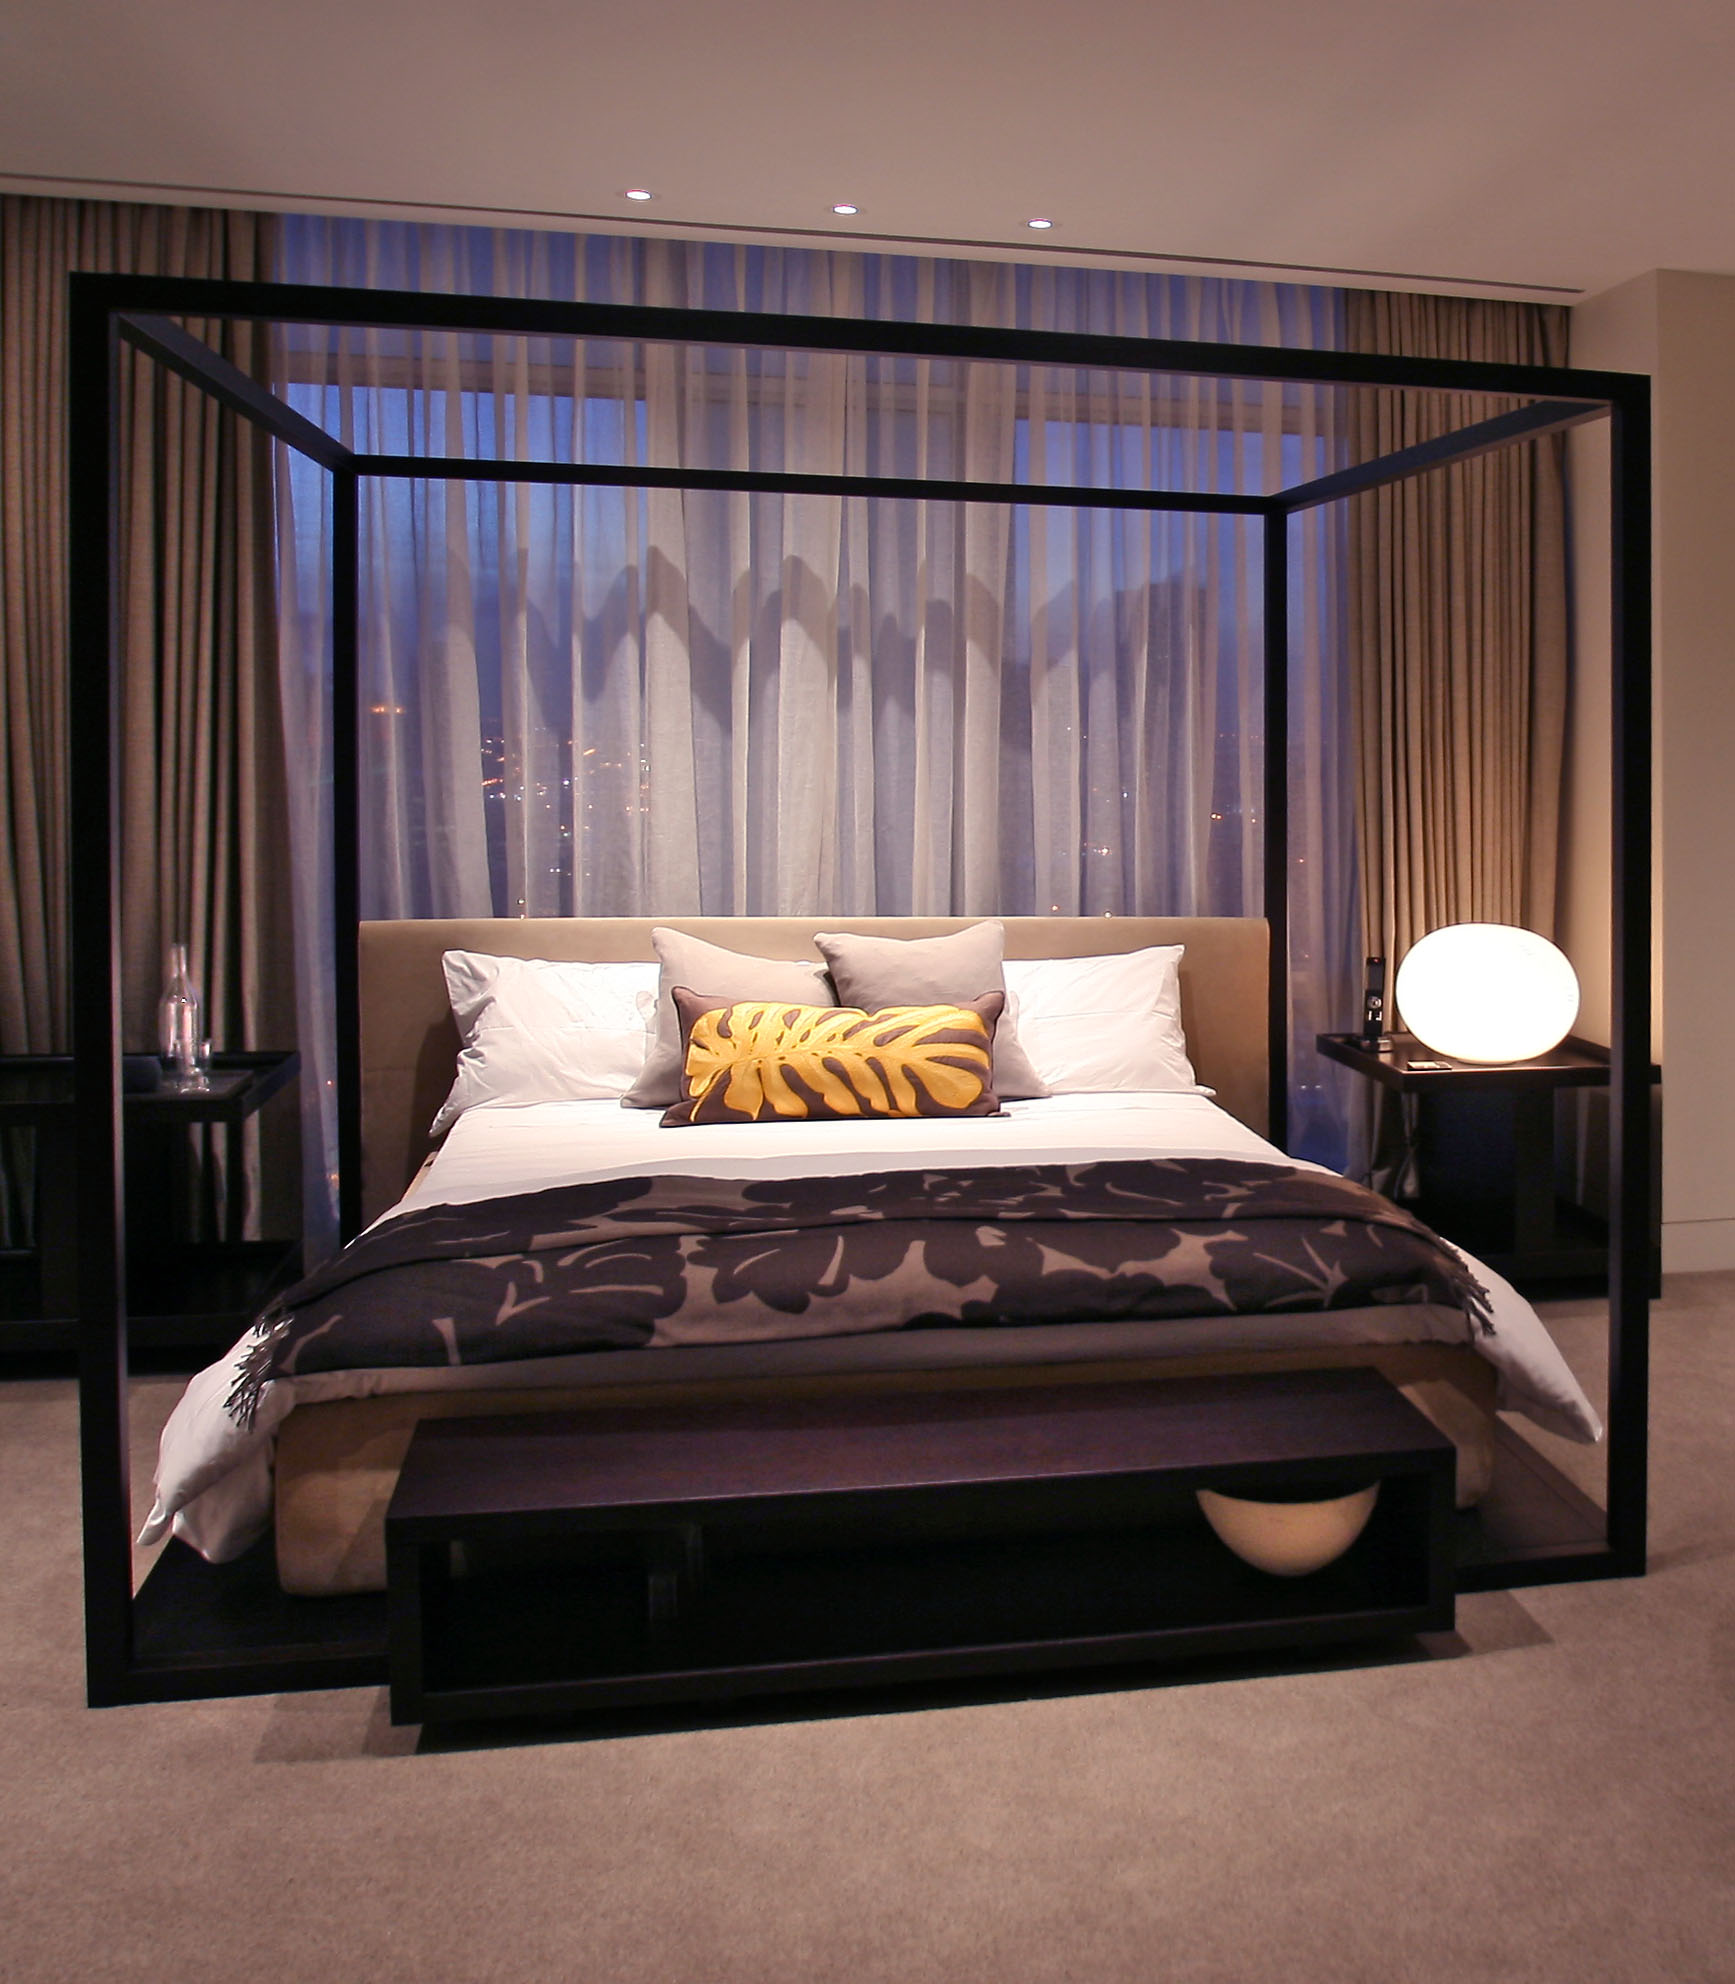 bedroom lighting a q a with lighting designer anne 10514 | bedroomlighting